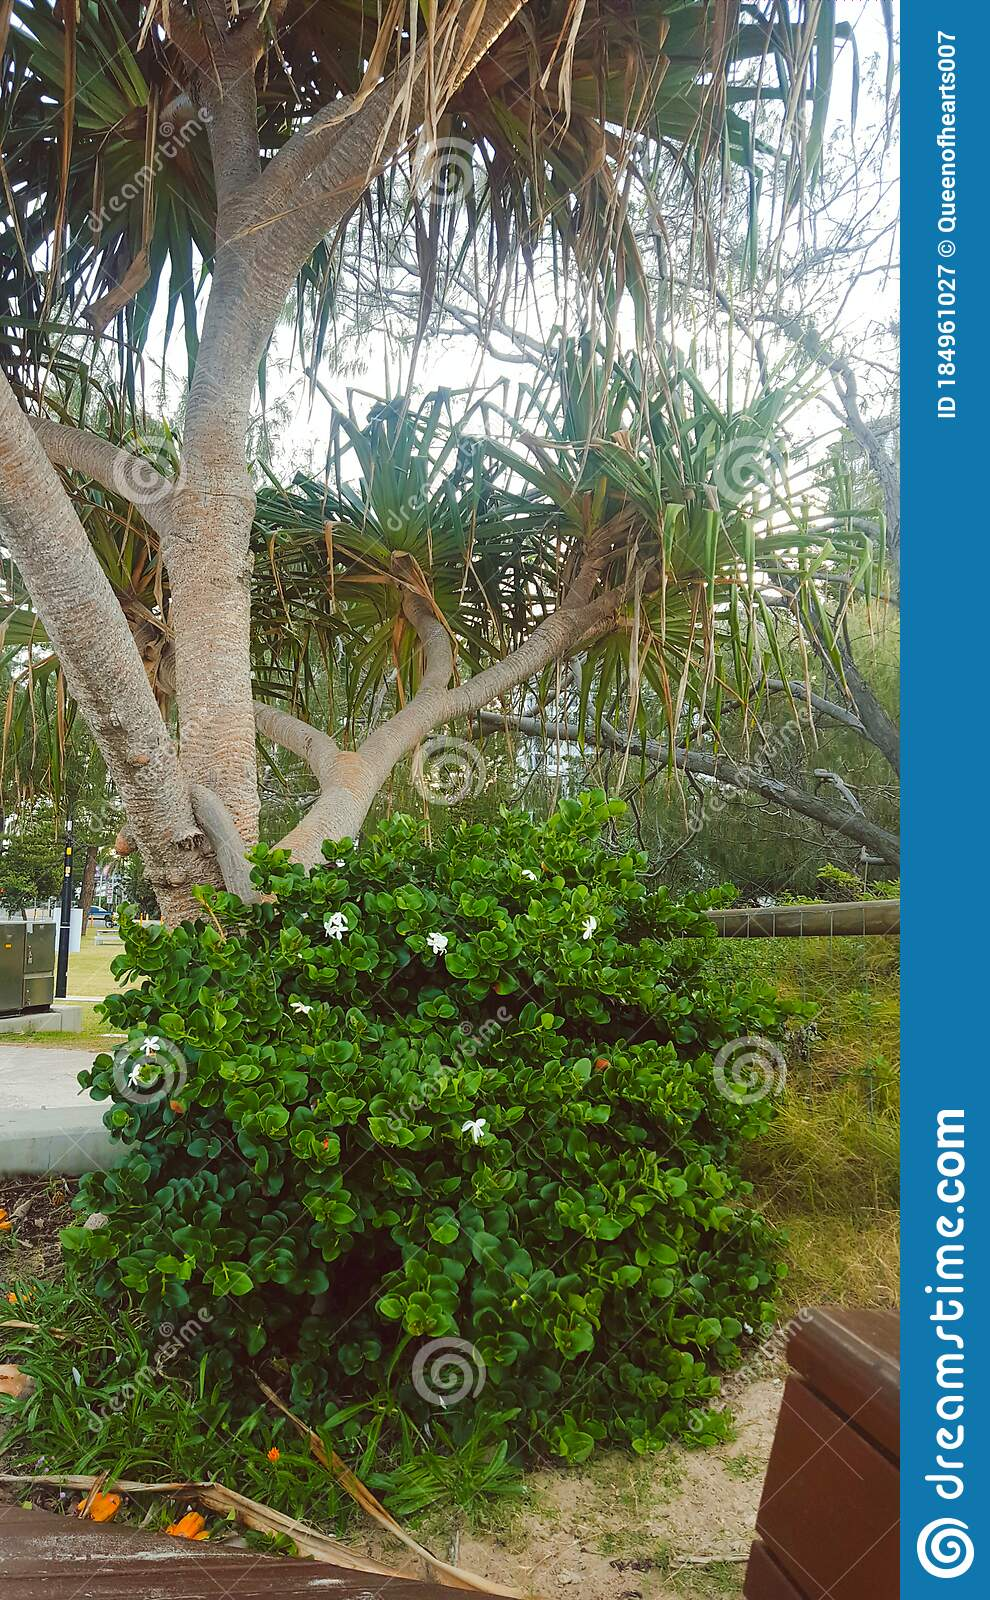 Flowers And Plants Tropical Plants In A Lovely Park In Broadbeach Qld Australia Stock Image Image Of Park Tropical 184961027